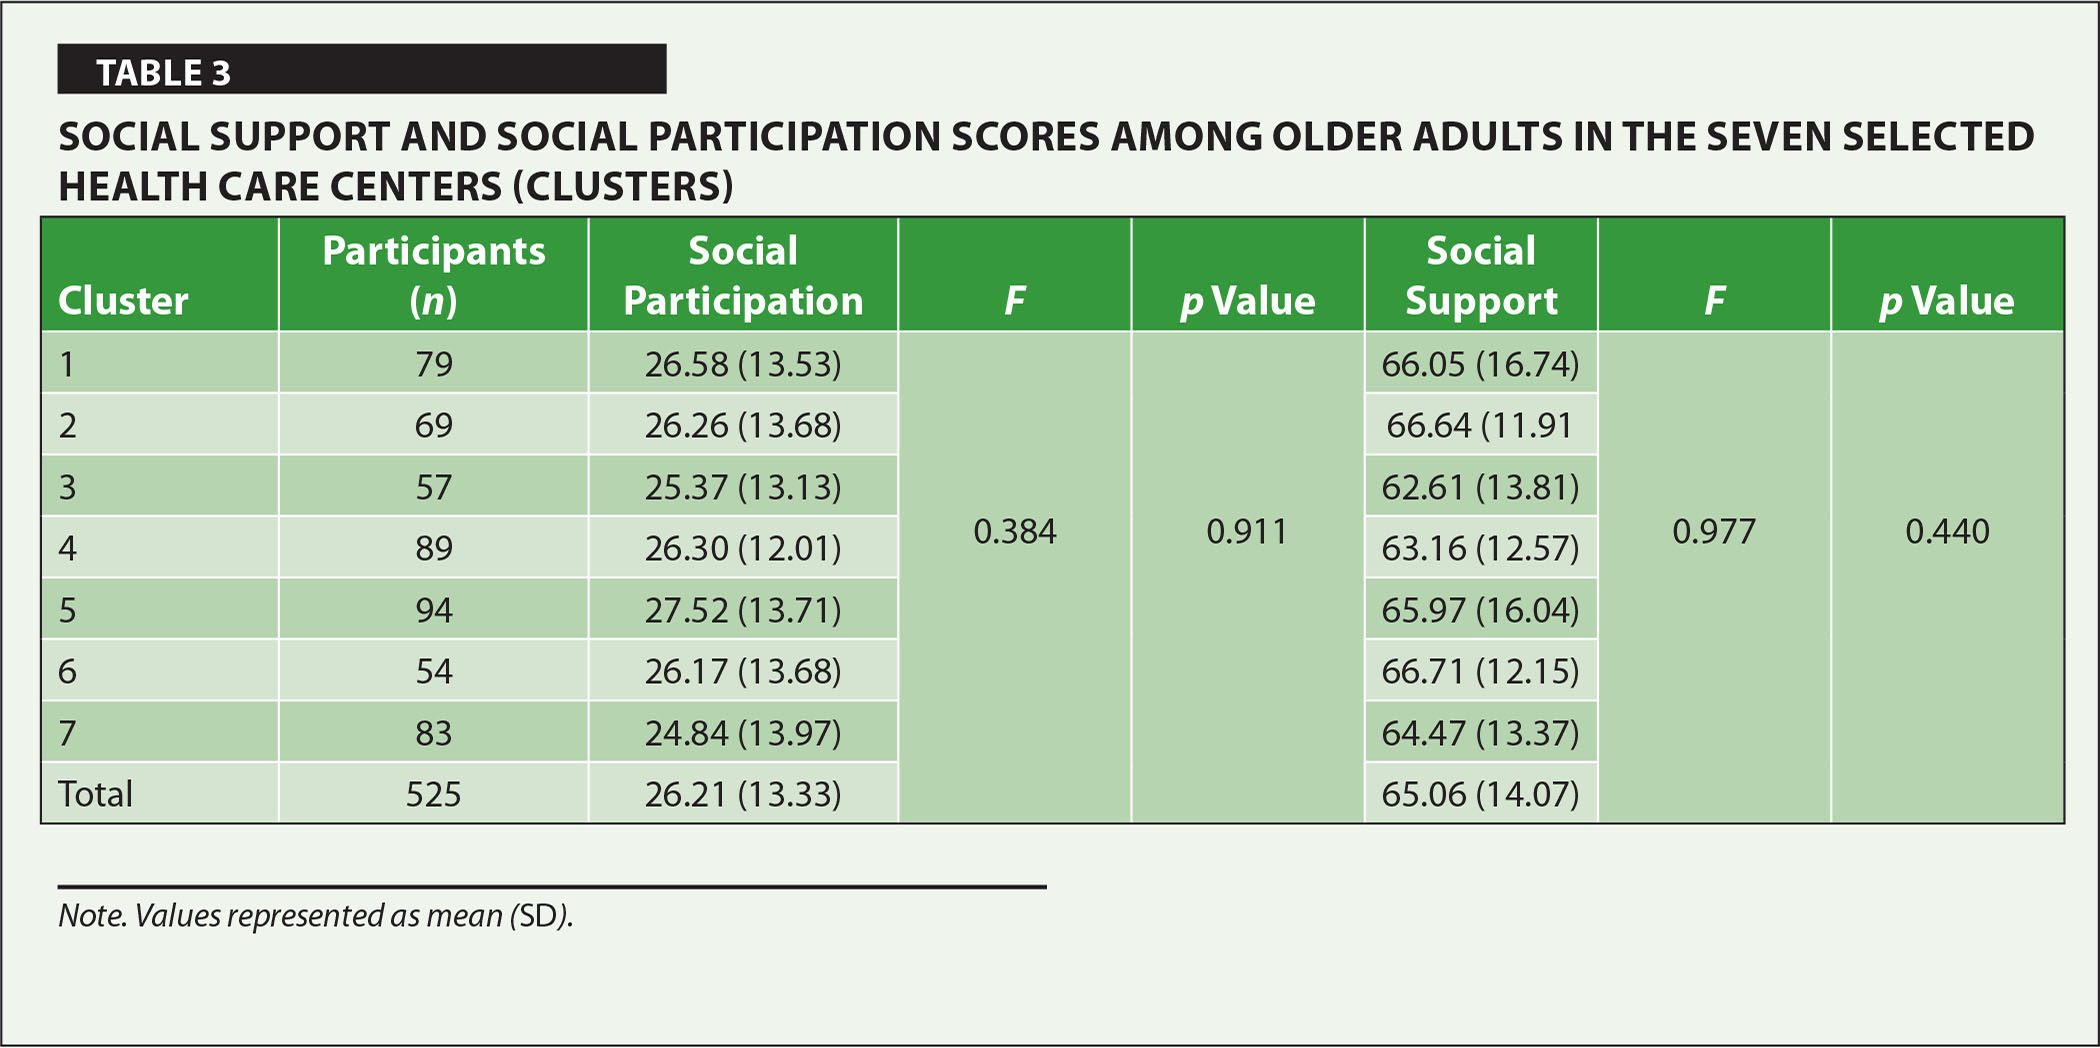 Social Support and Social Participation Scores Among Older Adults in the Seven Selected Health Care Centers (Clusters)